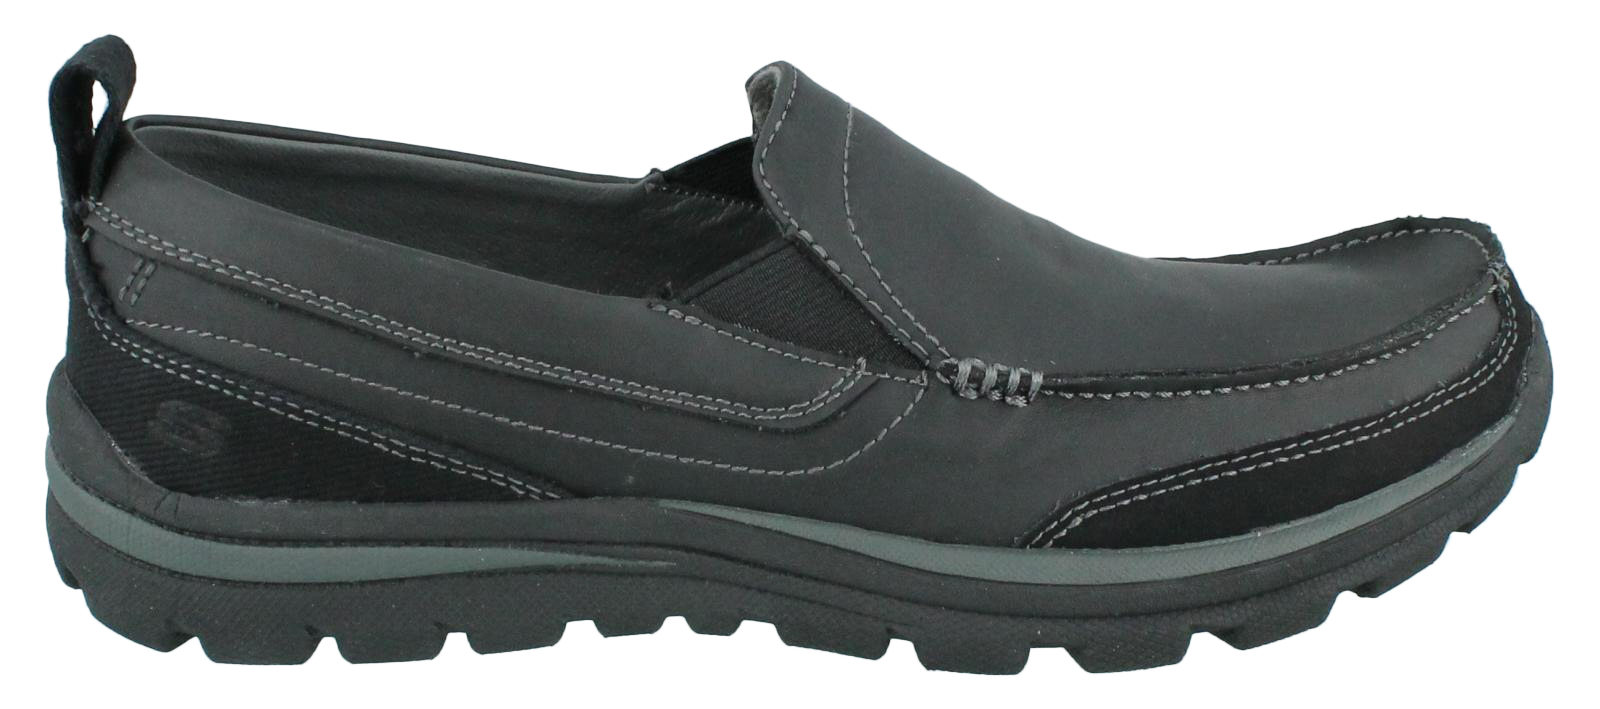 skechers men's gains